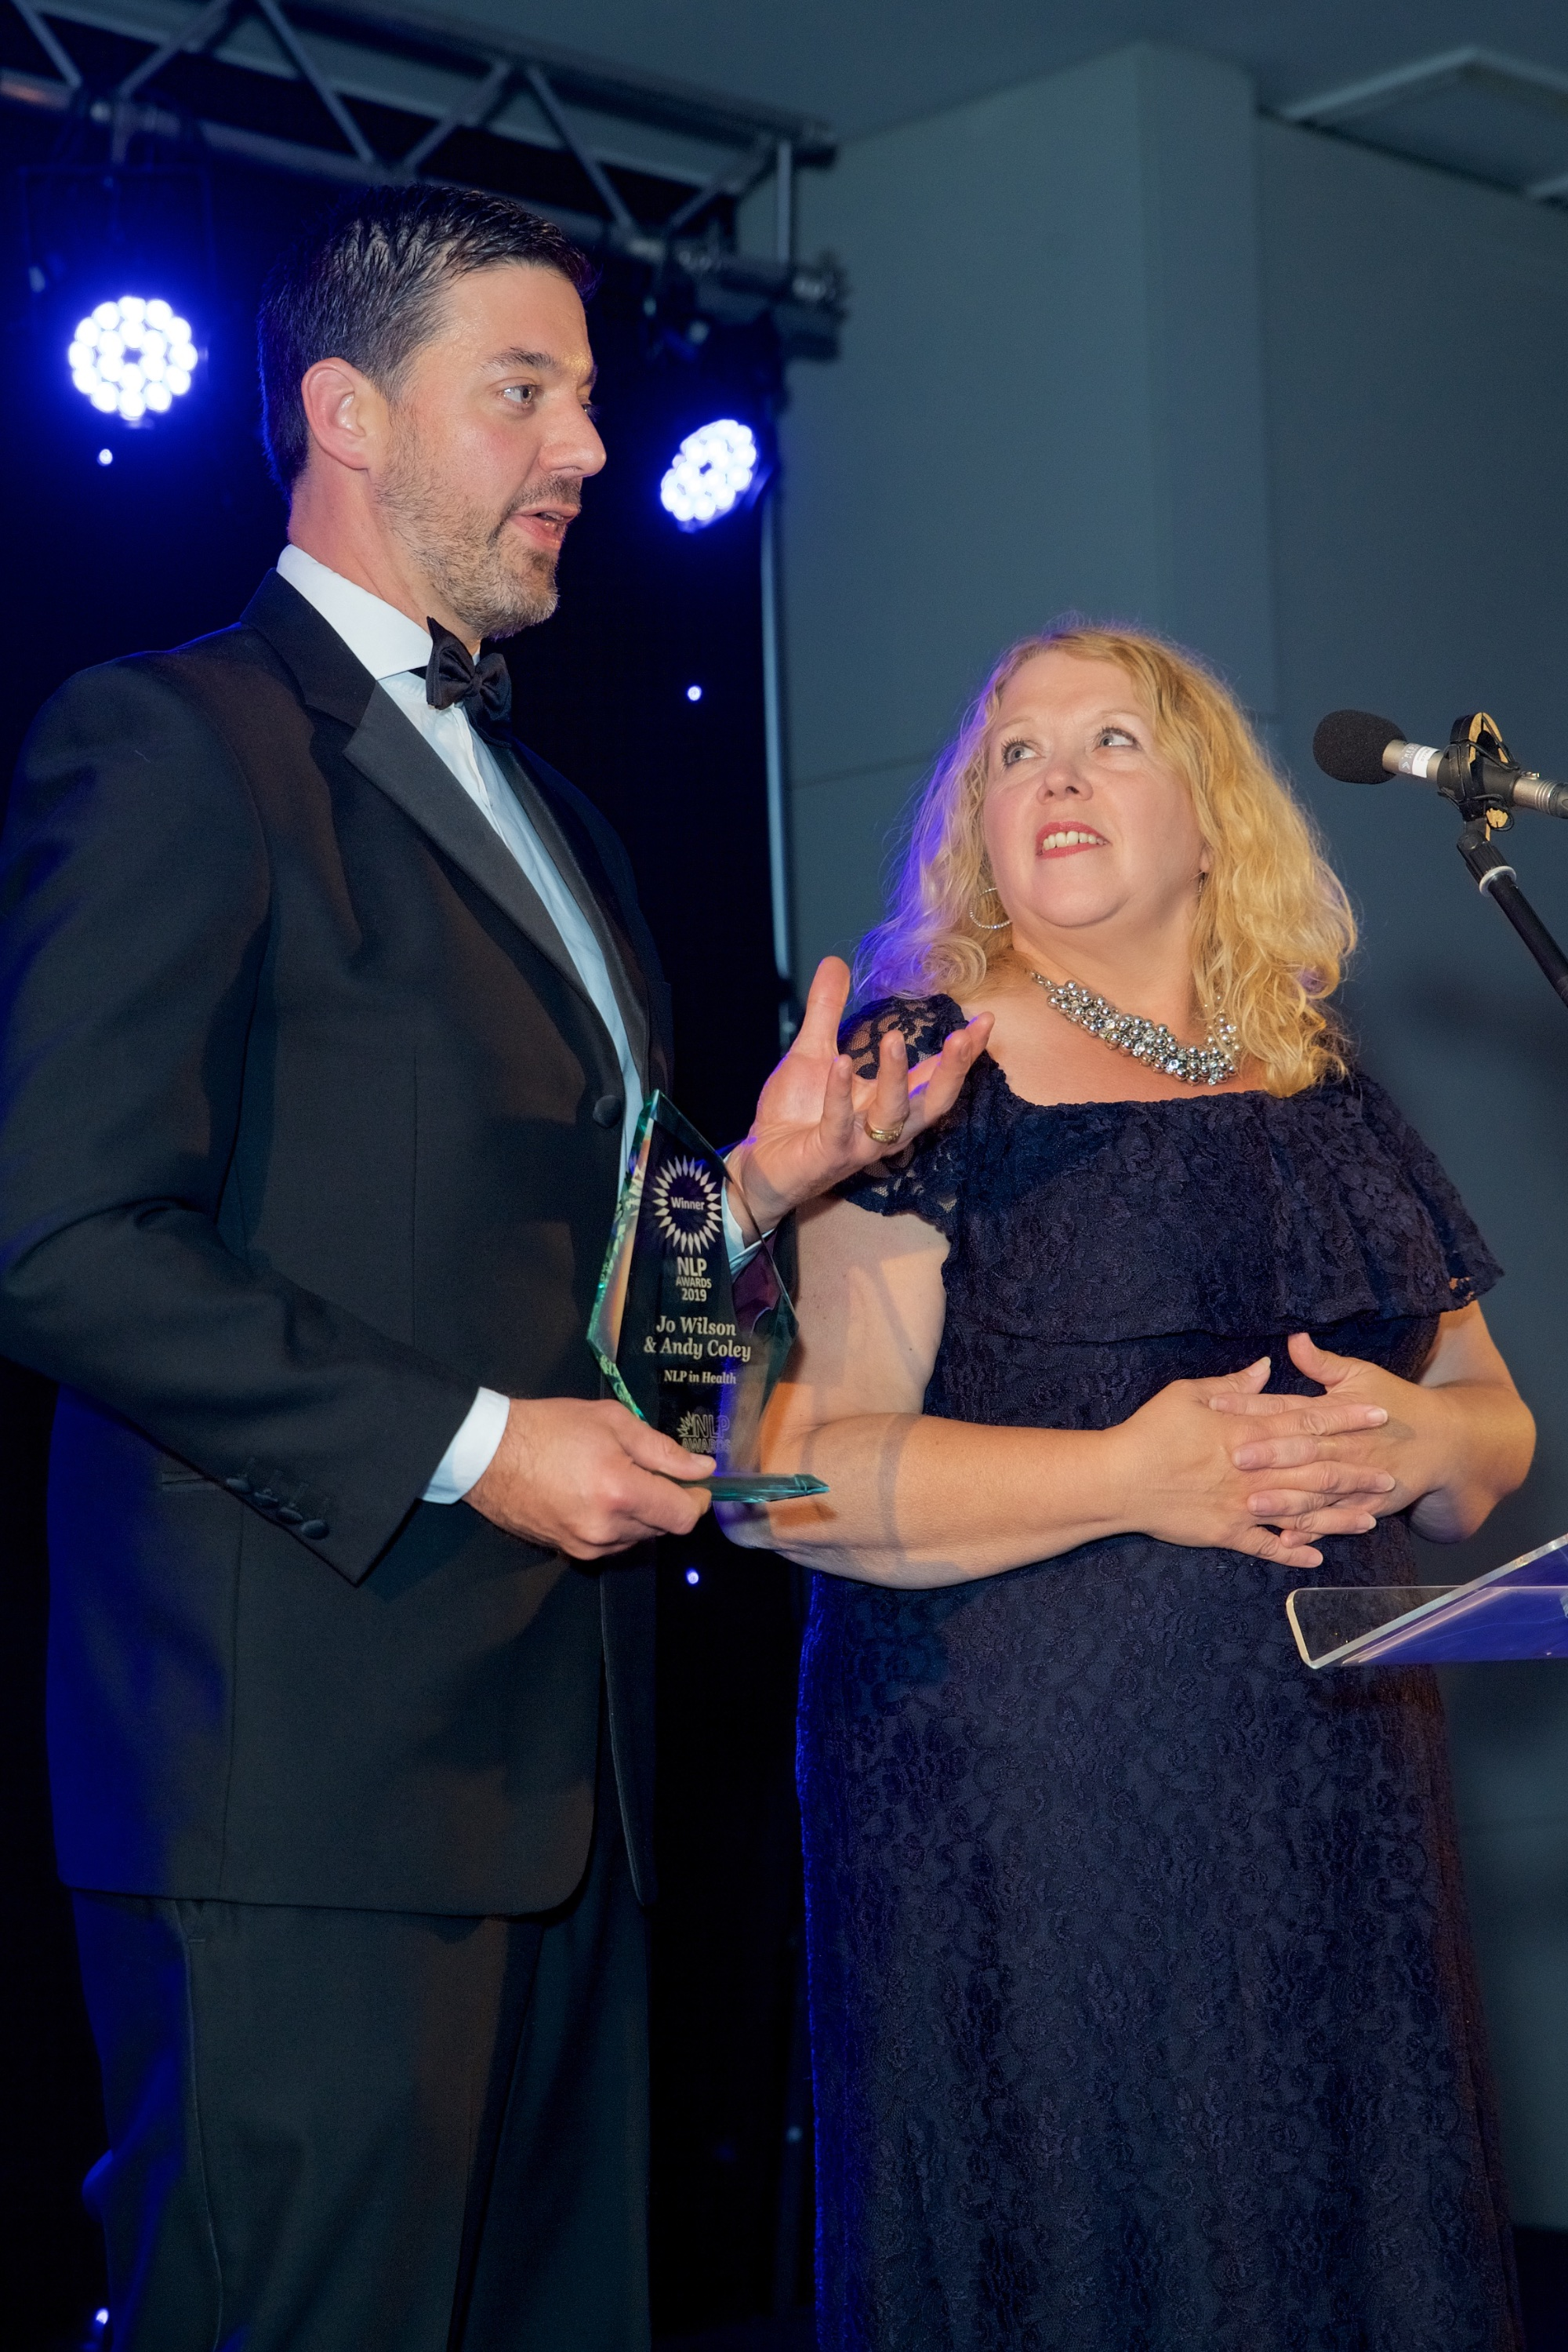 Jo Wilson and Andy Coley NLP Awards